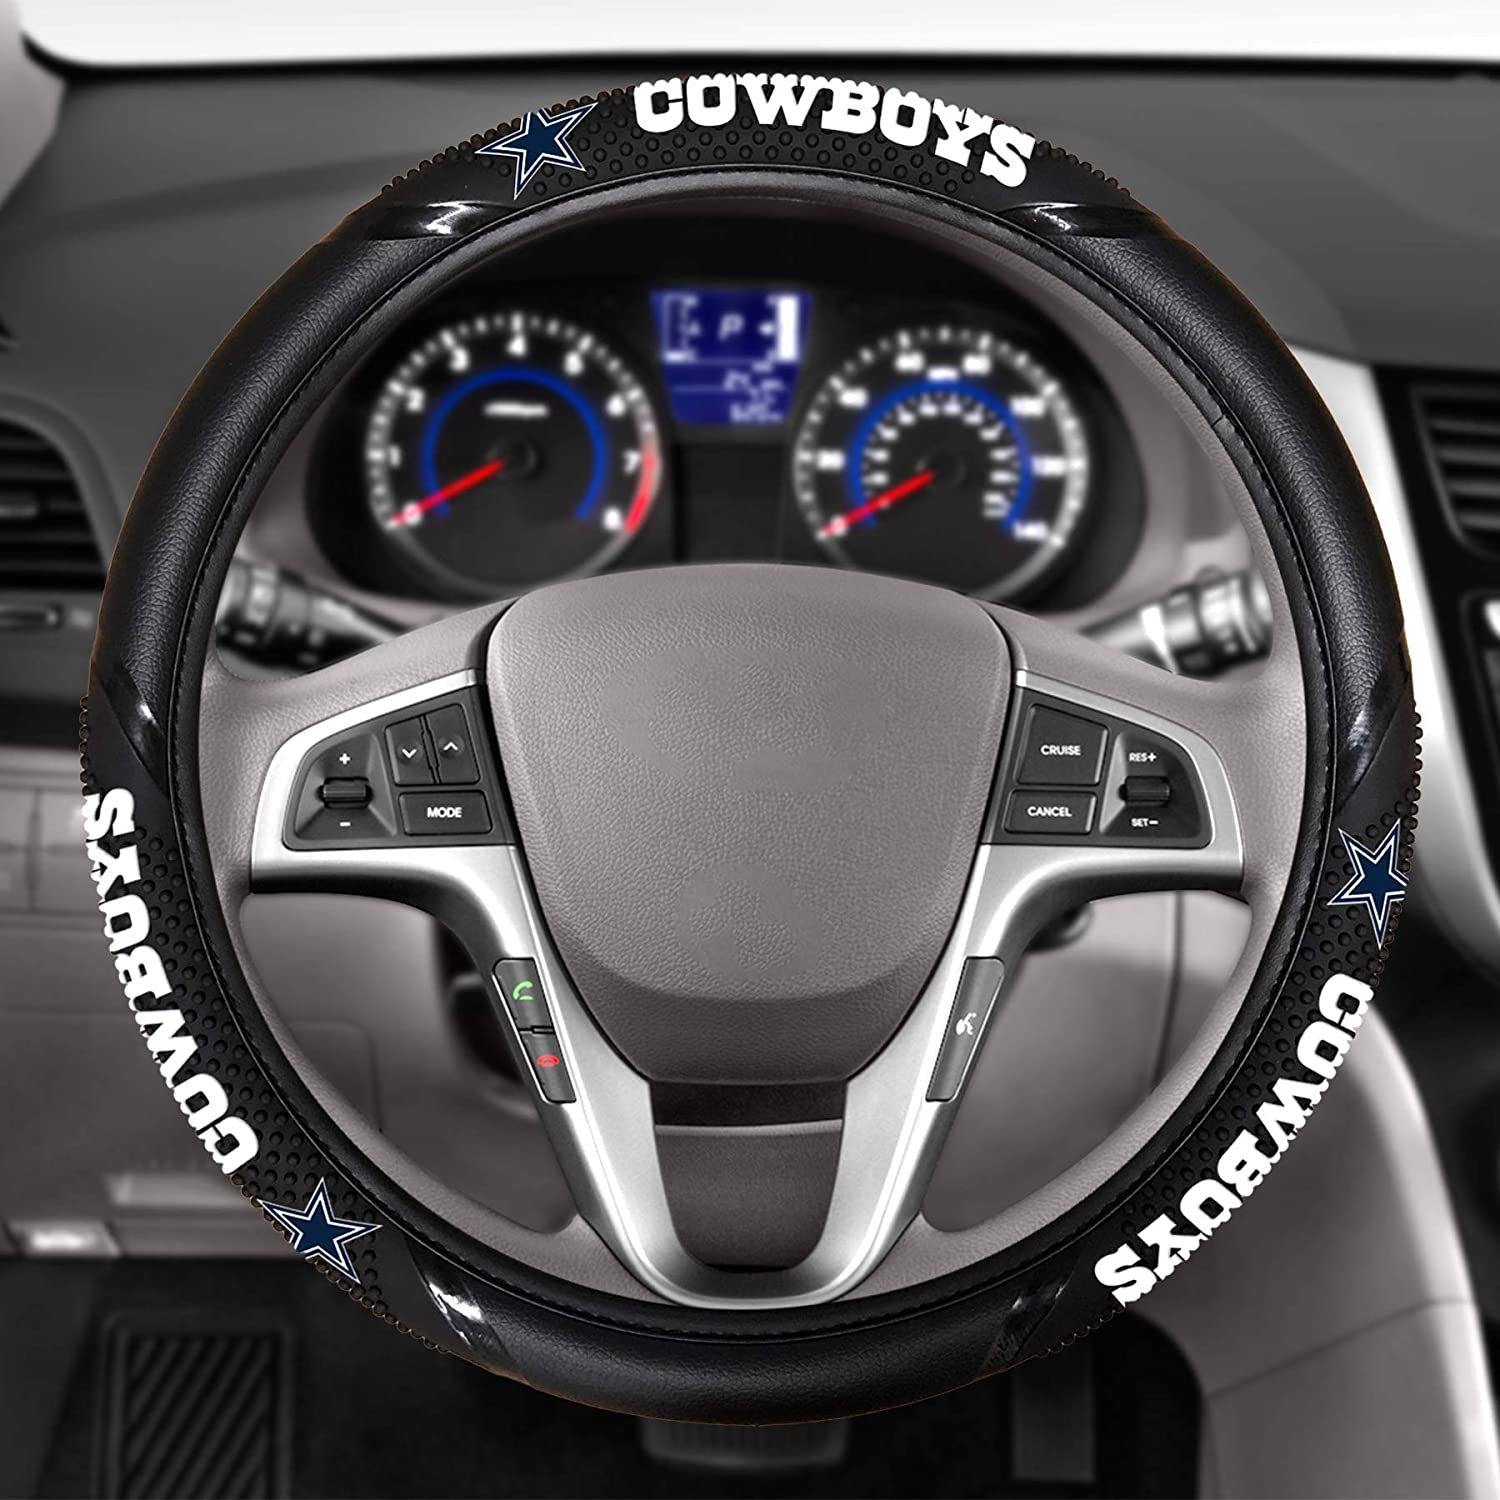 Fremont Die NFL Unisex Massage Grip Steering Wheel Cover